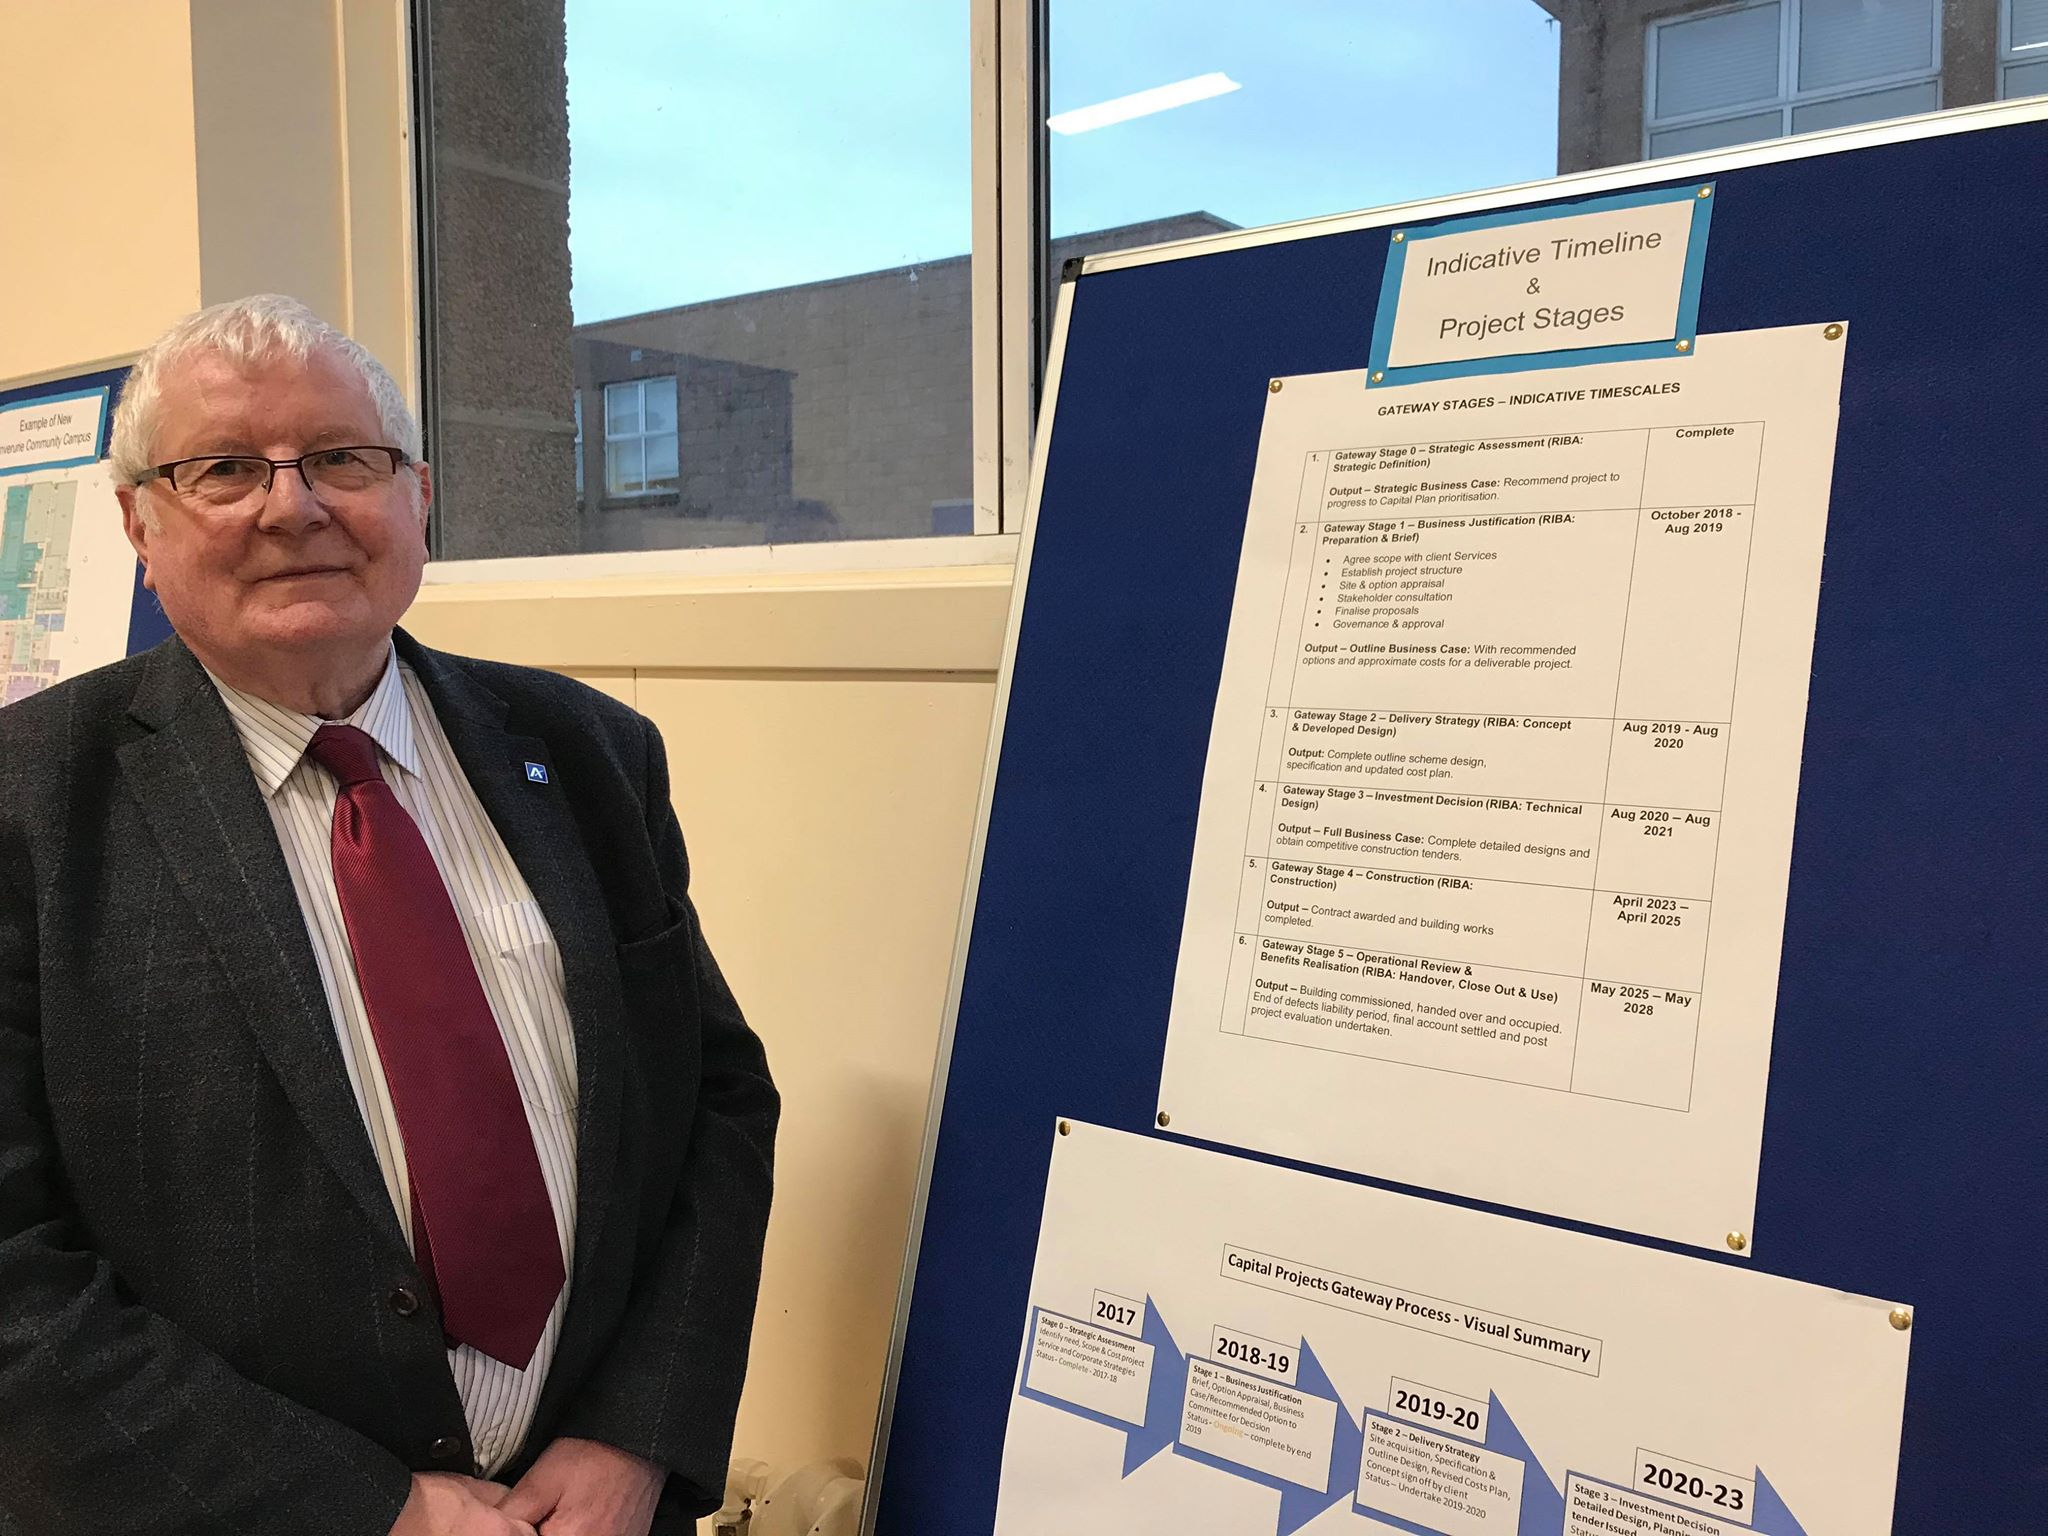 Councillor Norman Smith with the indicative time line of the Peterhead community campus.